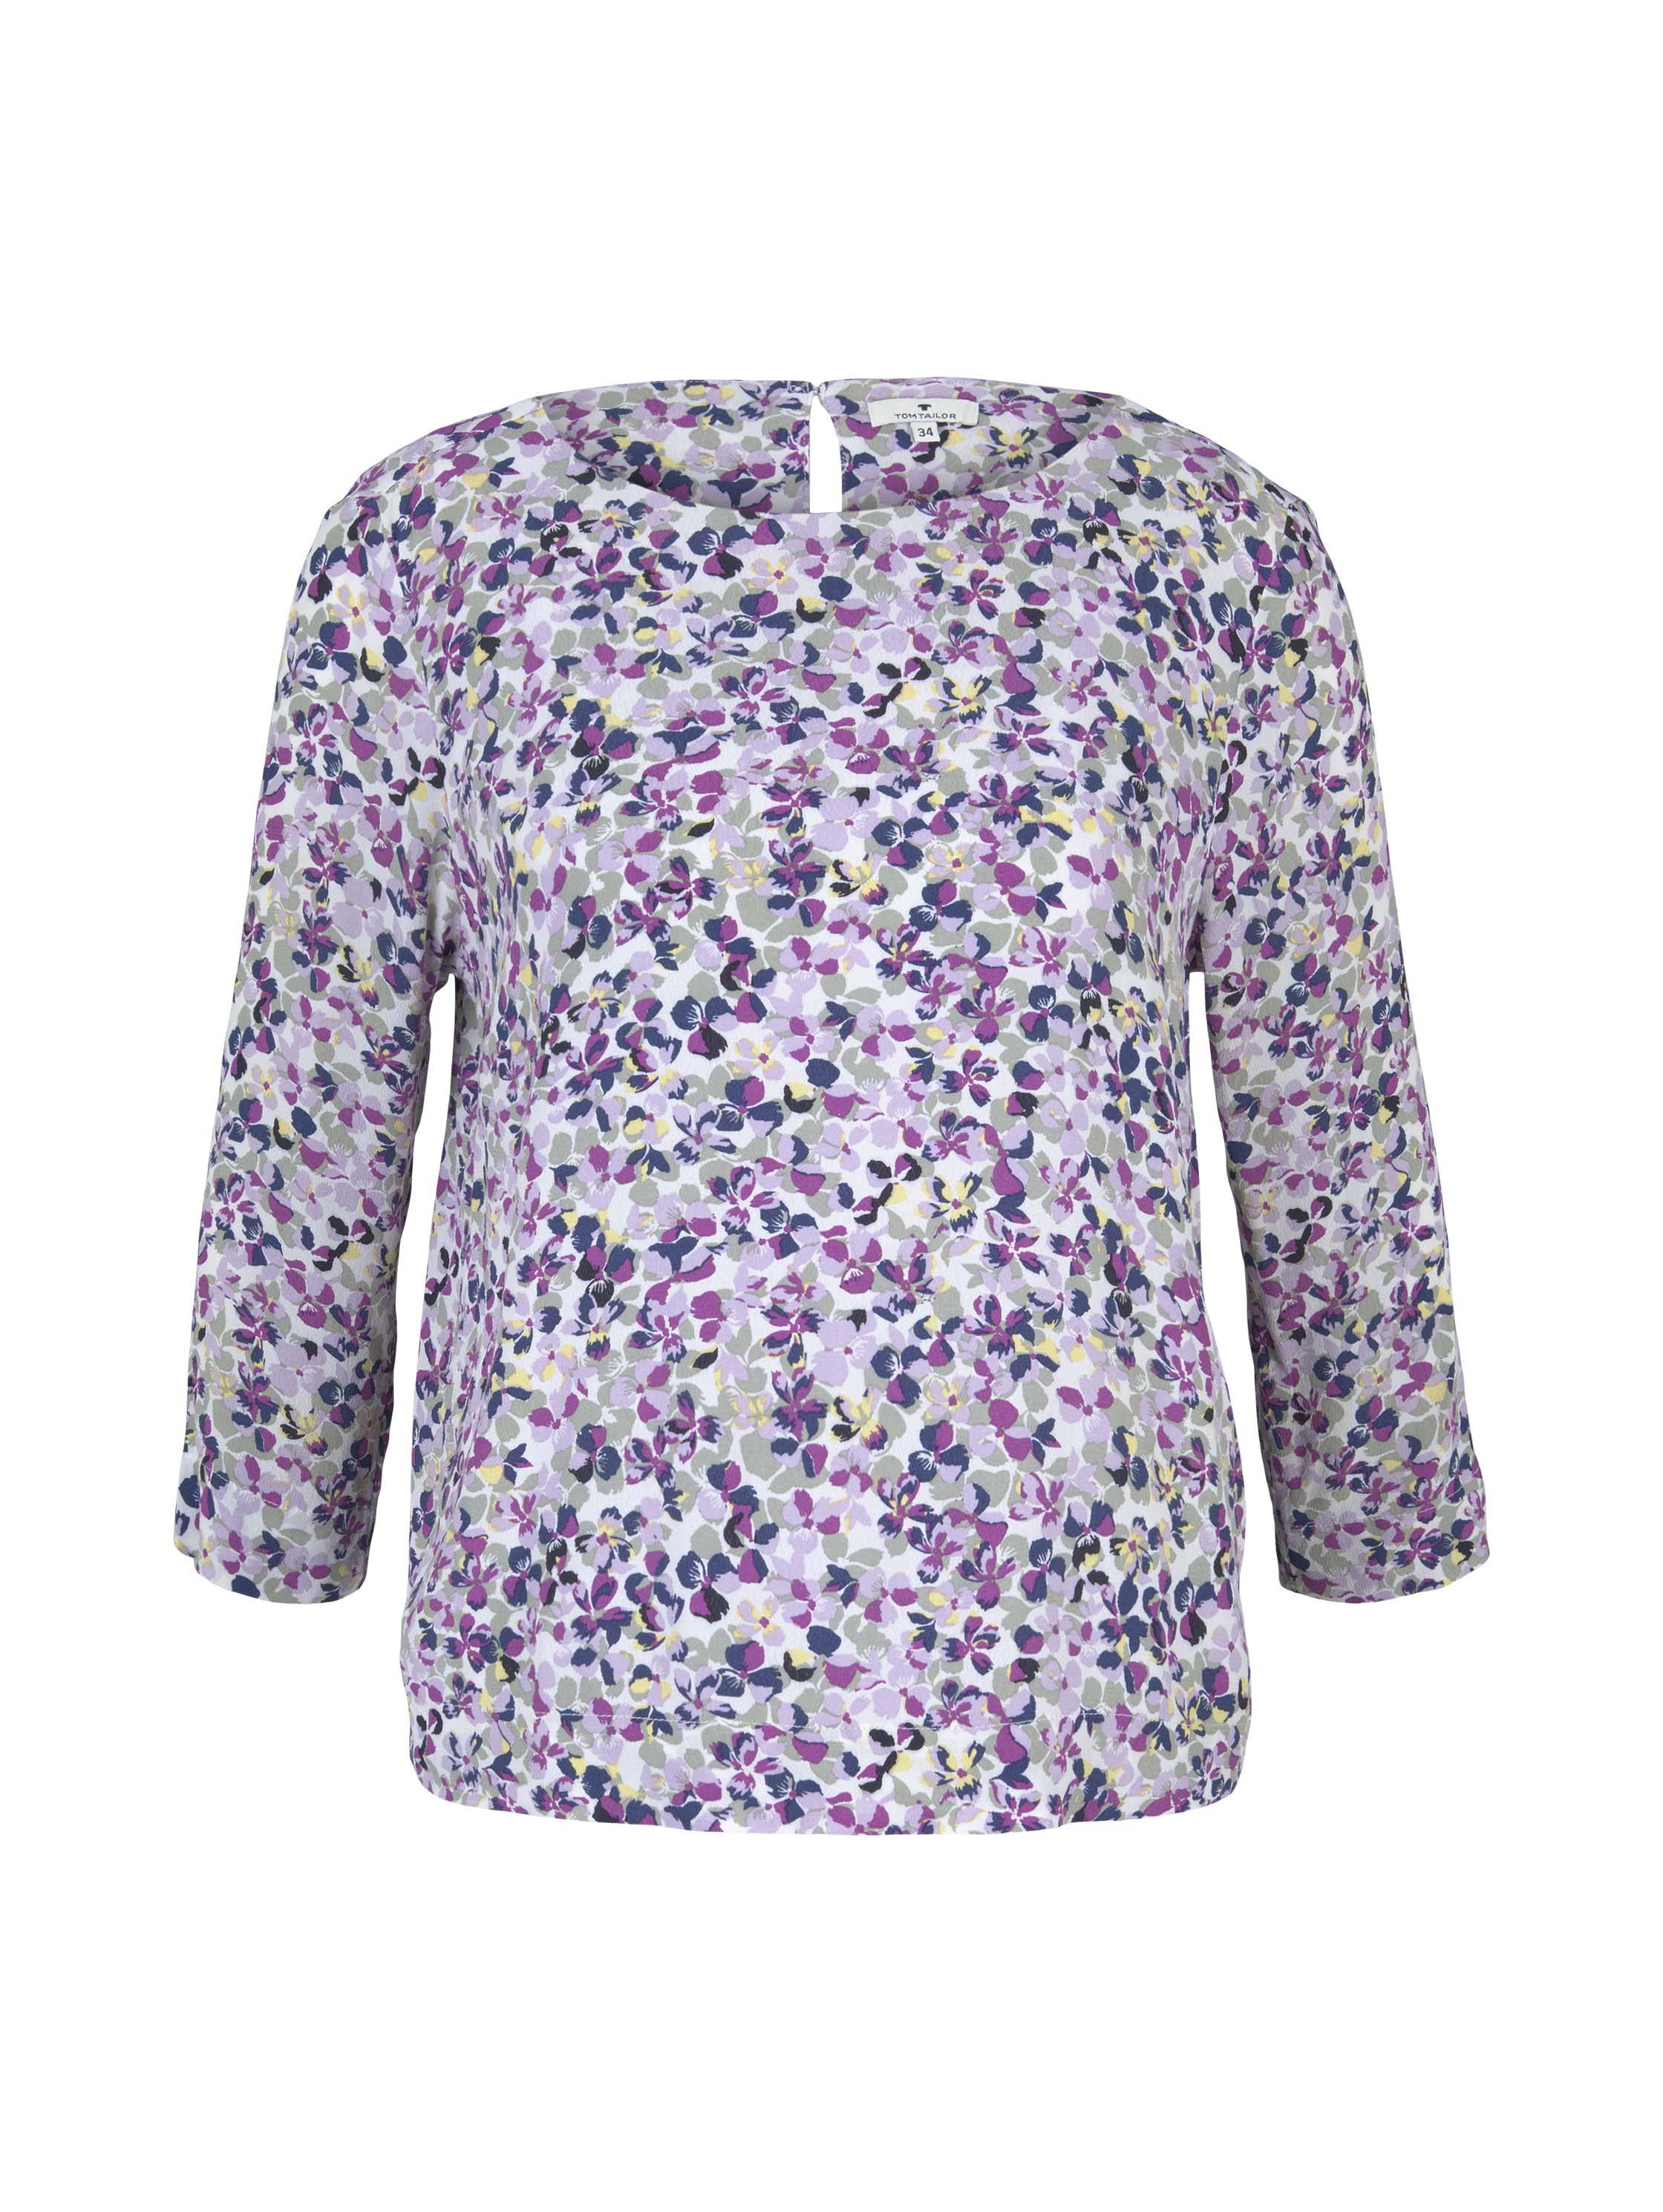 blouse easy shape, offwhite floral design